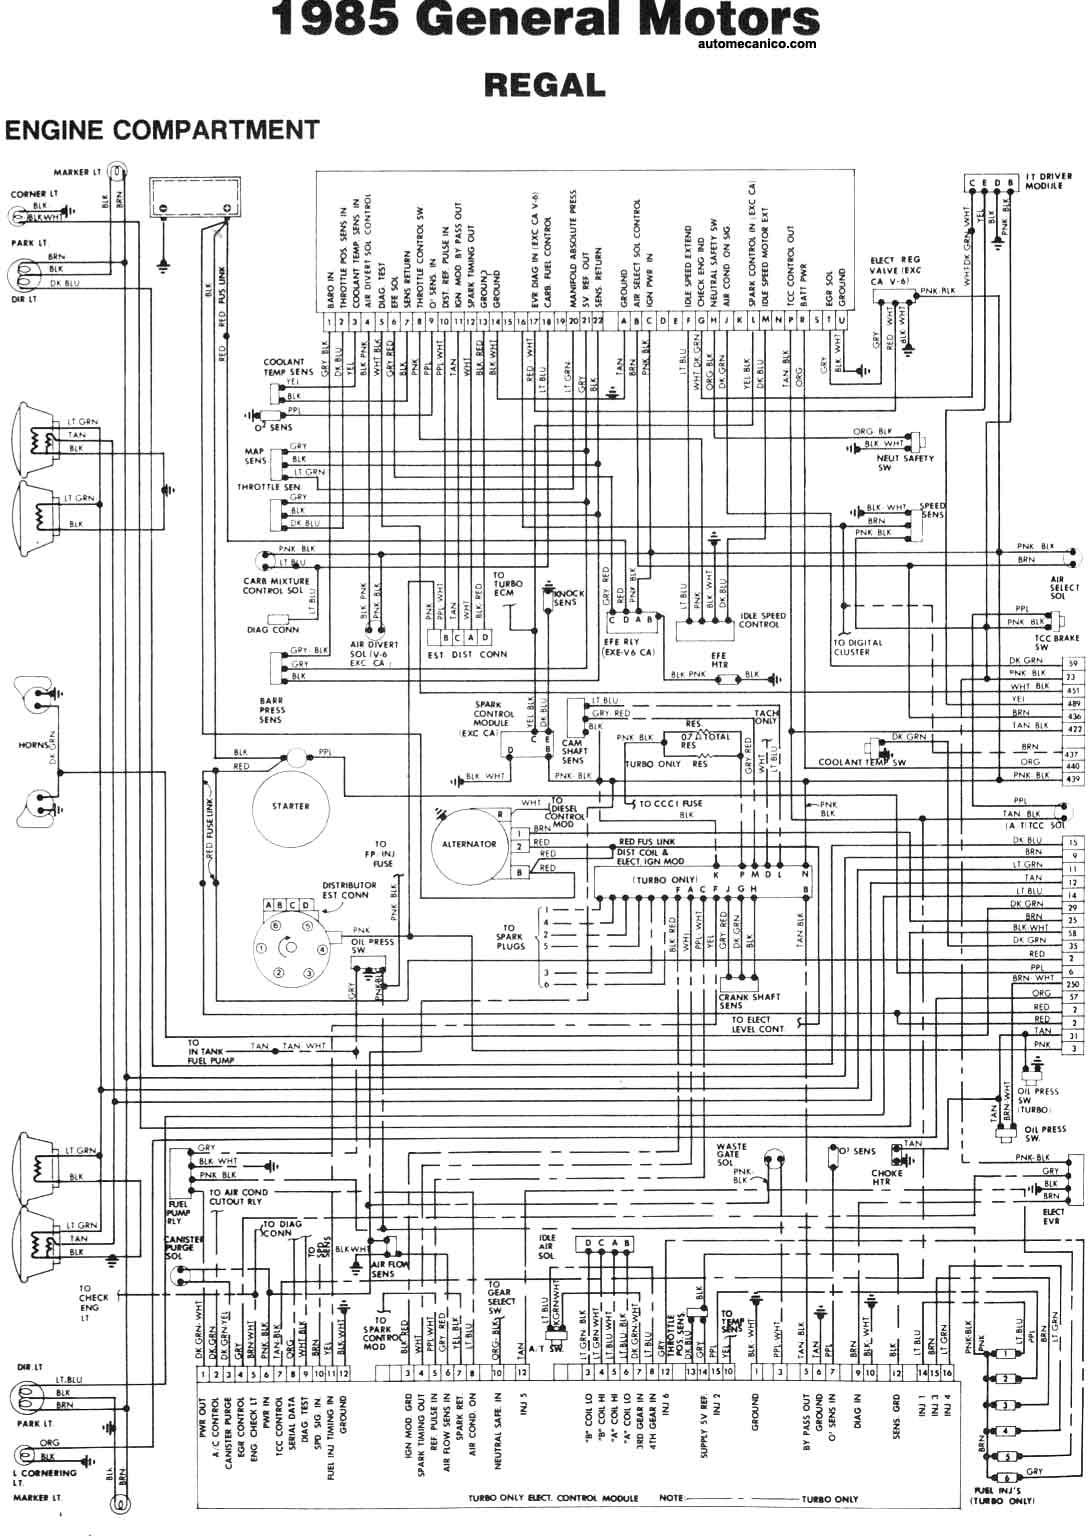 1 8t Iat Sensor Wiring Diagram additionally Watch further 2005 Toyota Tundra Stereo Wiring Diagram likewise Watch moreover Toyota Radio Wiring. on toyota maf sensor wiring diagram